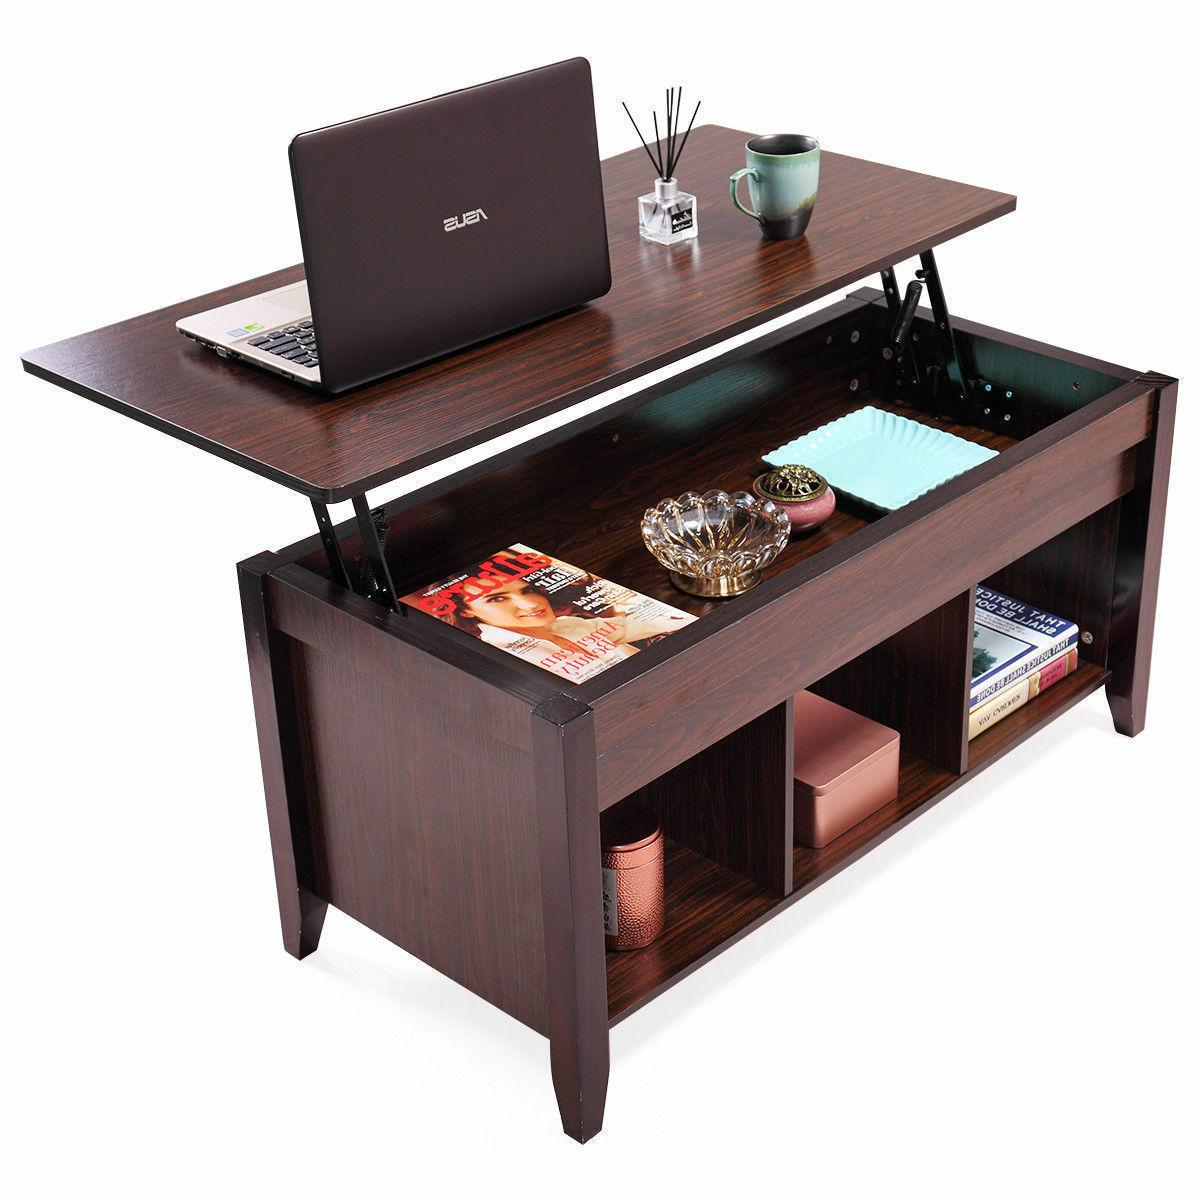 Lift Top Coffee Table w/ Hidden Compartment Storage Shelf Li